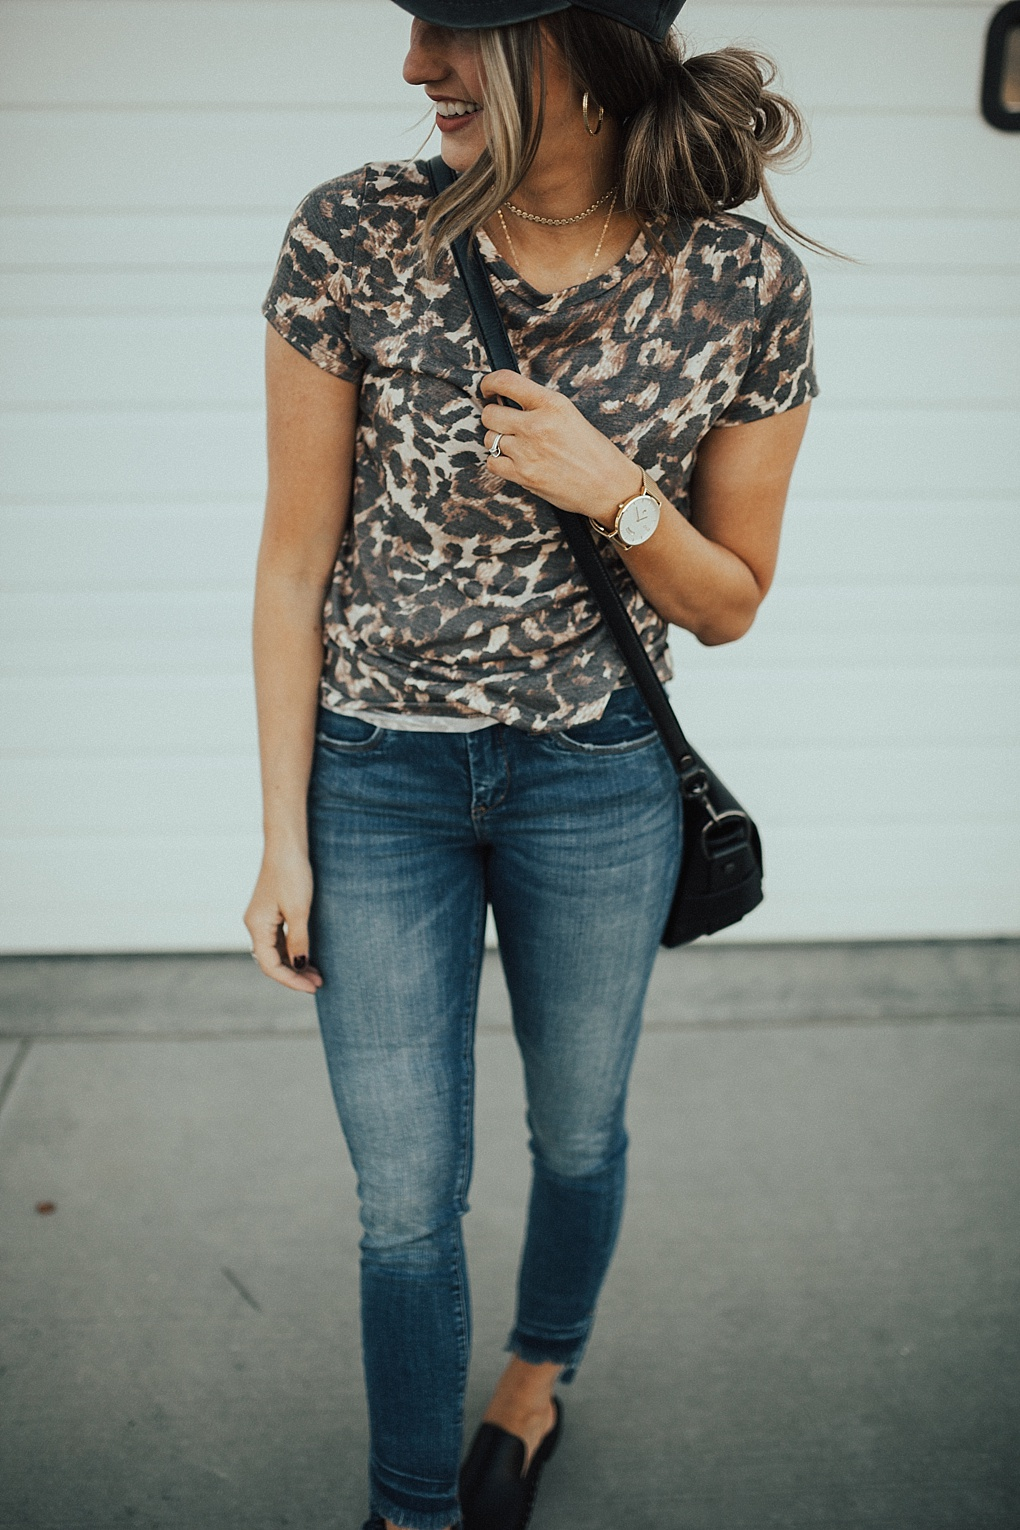 The Momiform (Casual Mom Outfit) I'll Be Living In This Fall by Utah fashion blogger Dani Marie